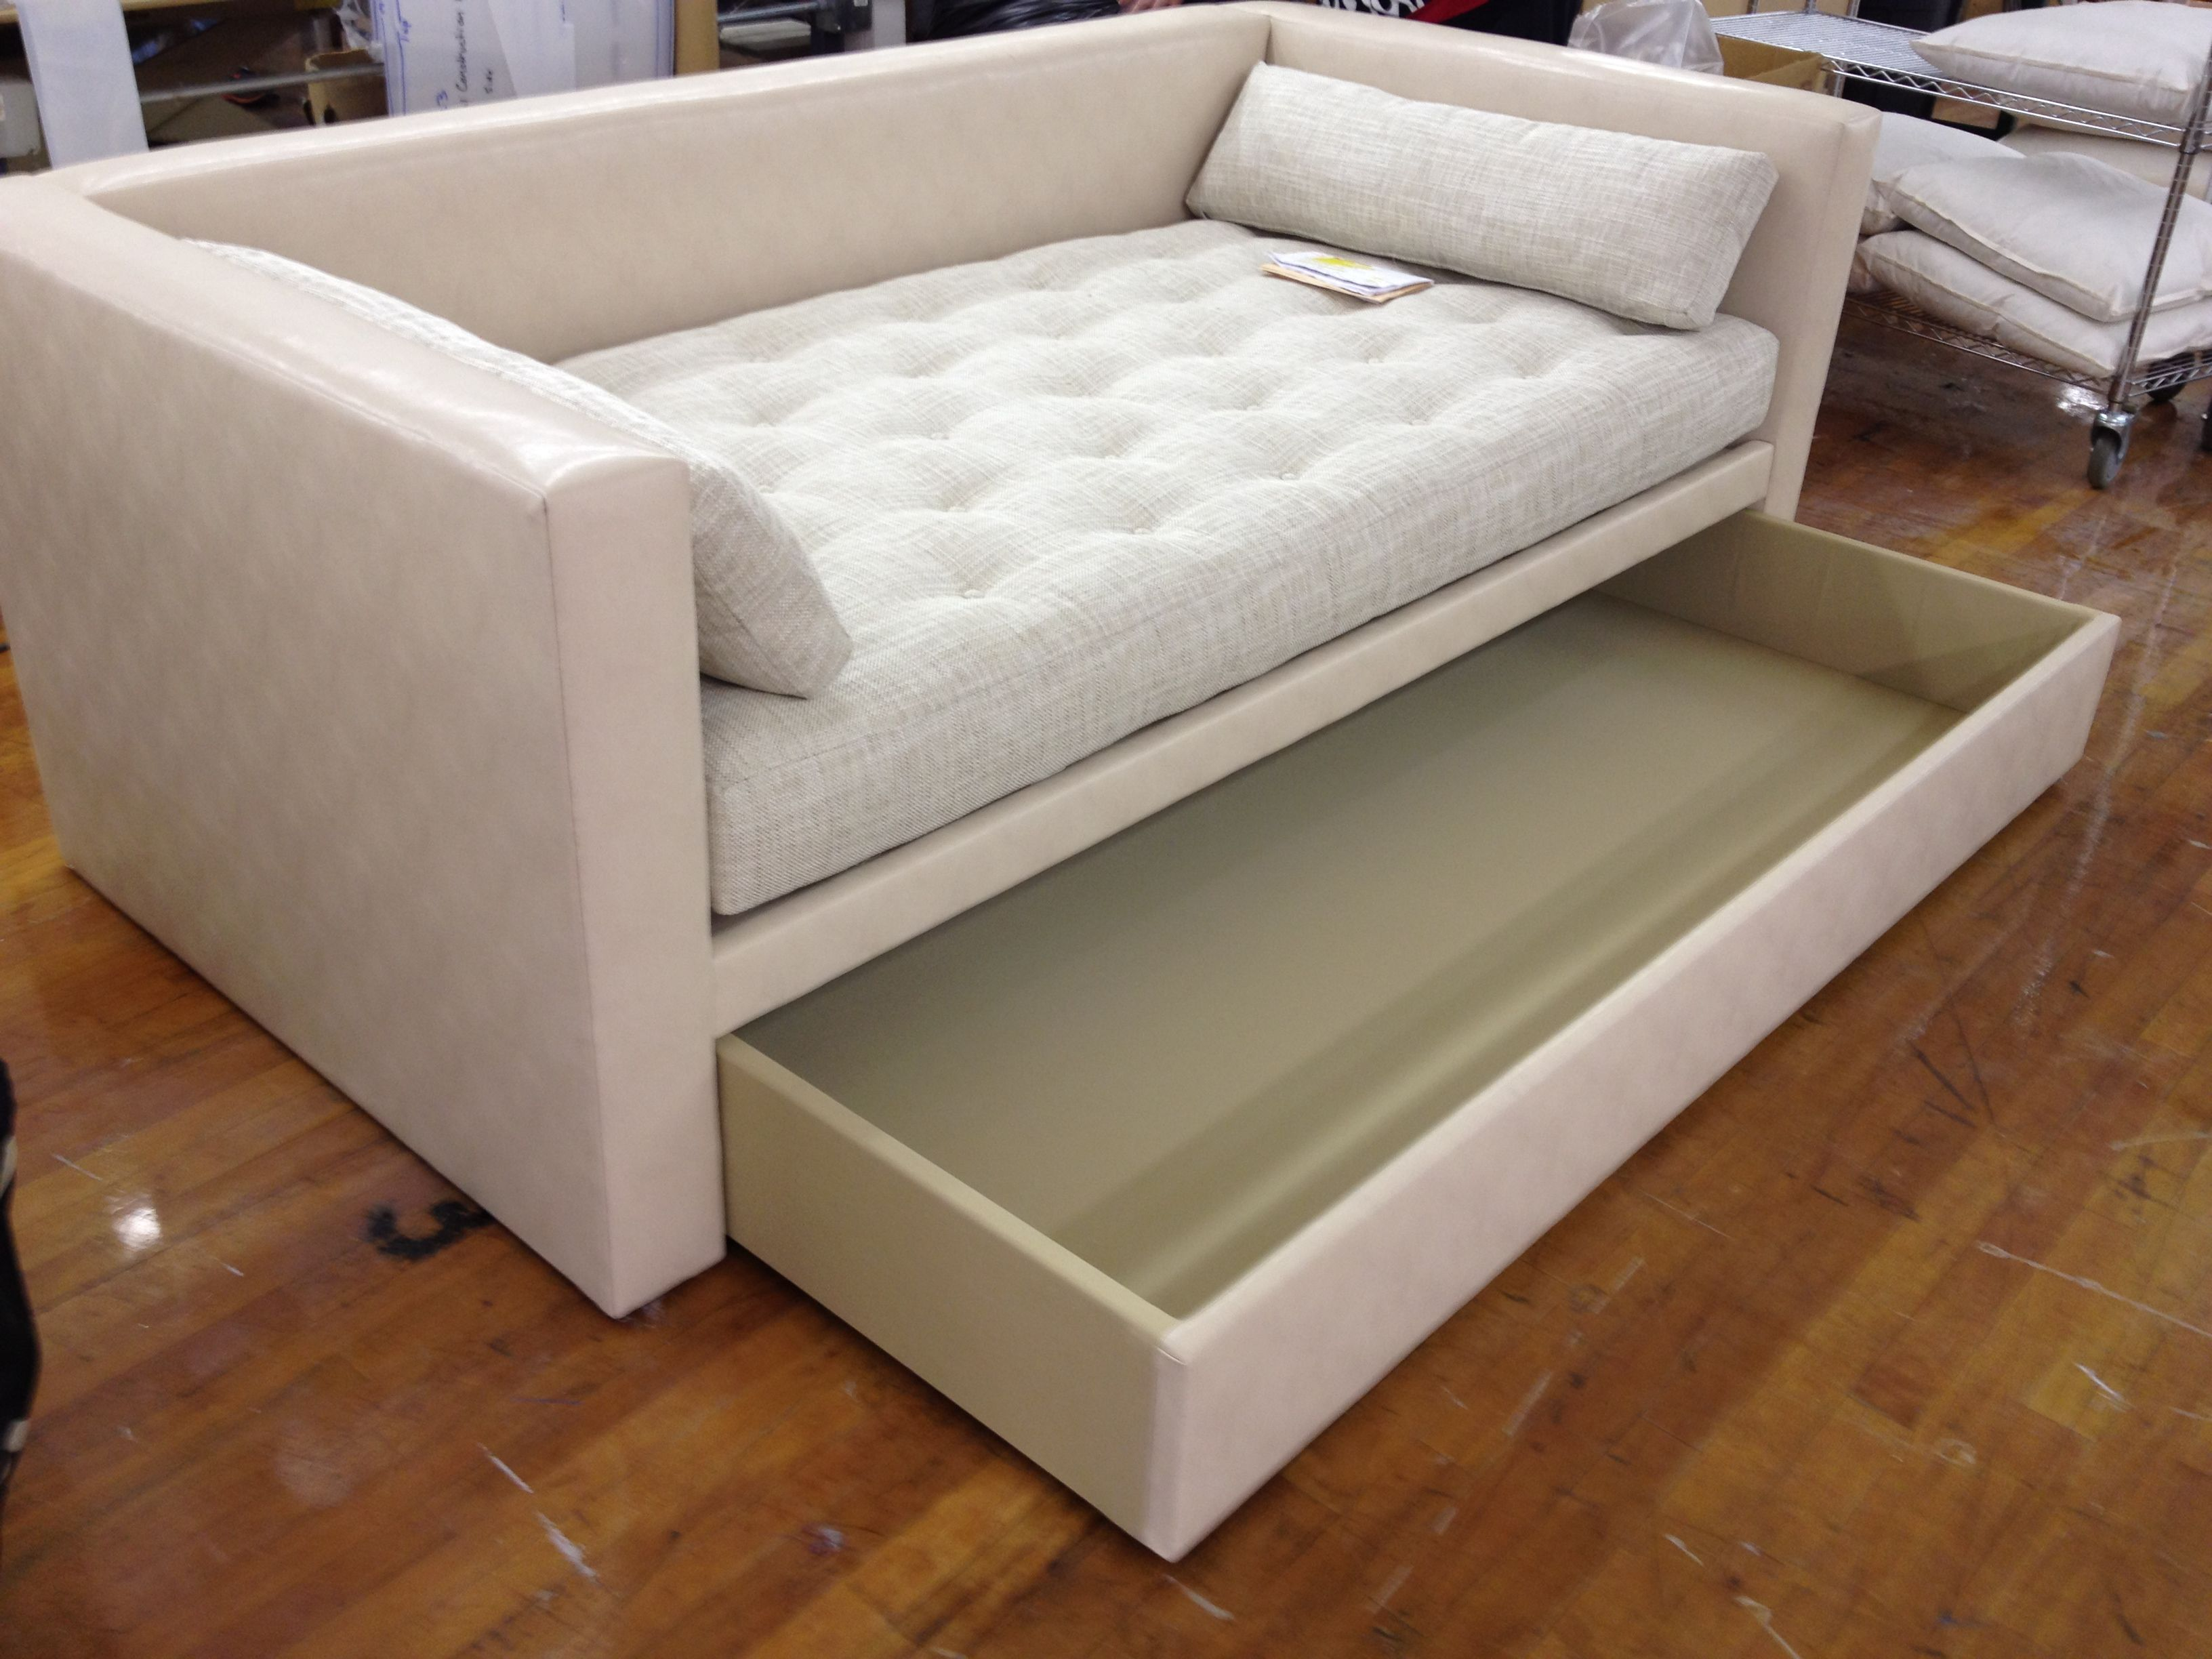 Trundle bed sofa Porter M2M Divan into a custom sized trundle